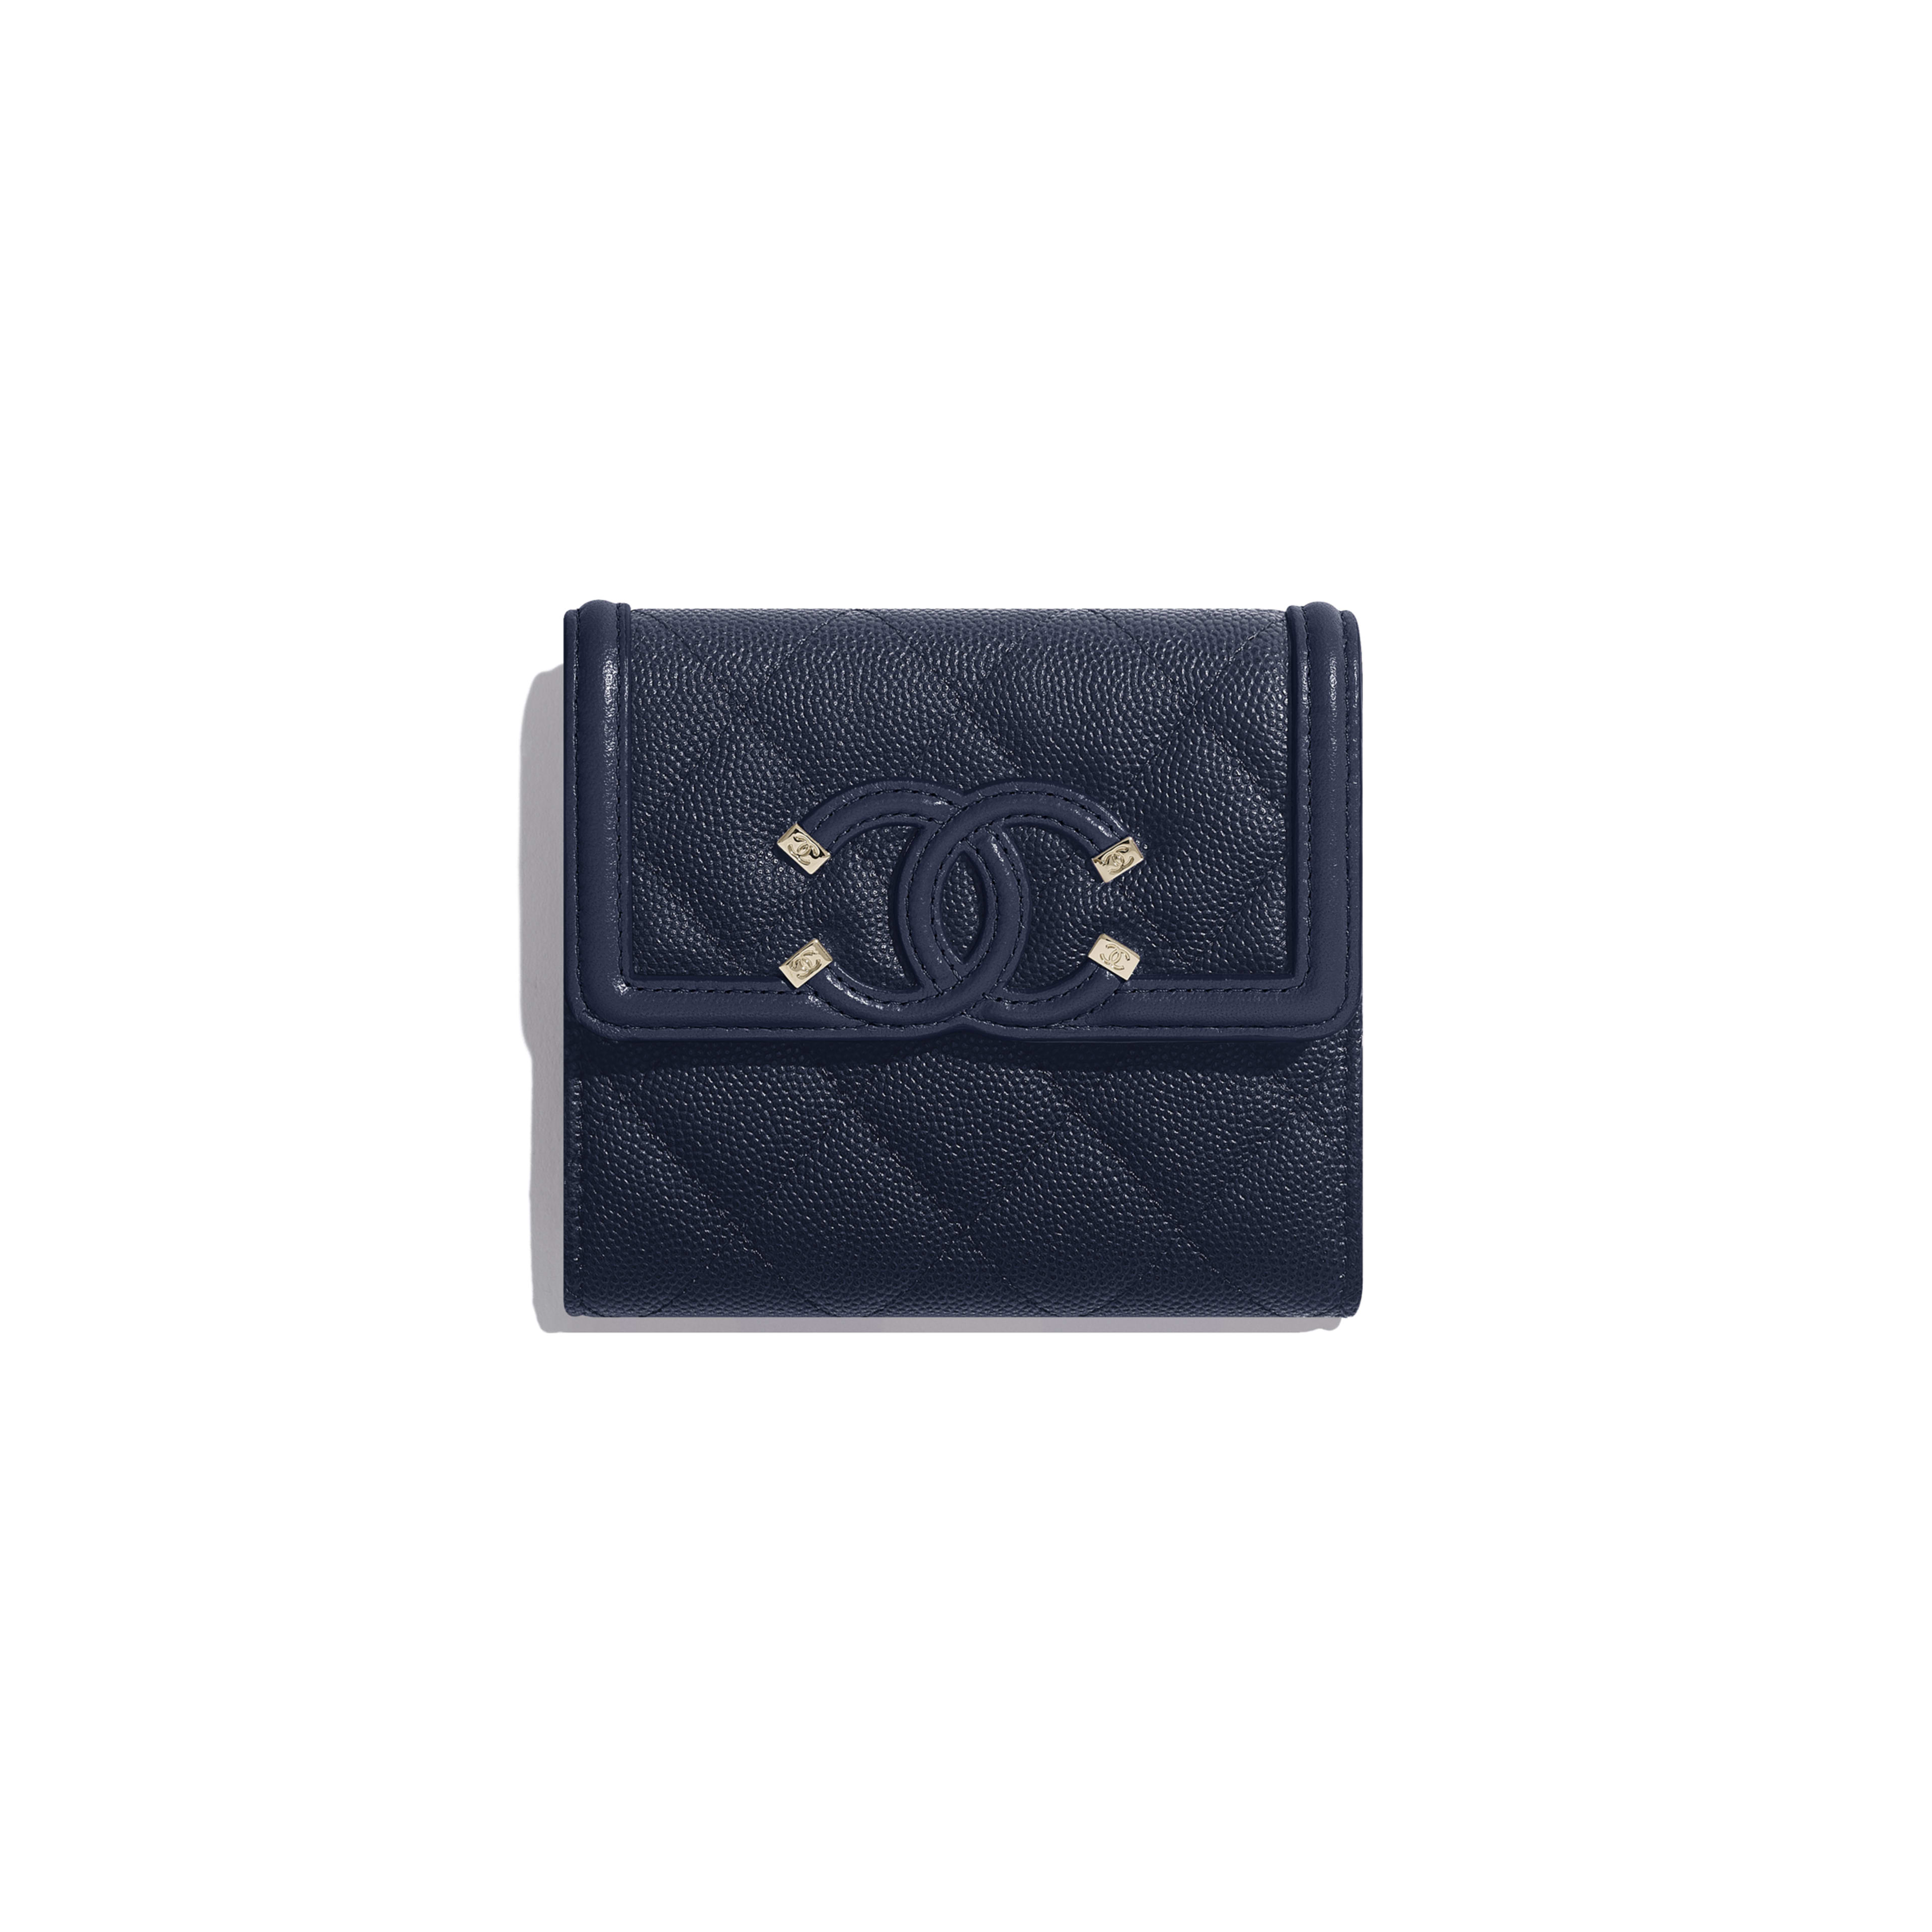 Small Flap Wallet - Navy Blue - Grained Calfskin & Gold-Tone Metal - Default view - see full sized version